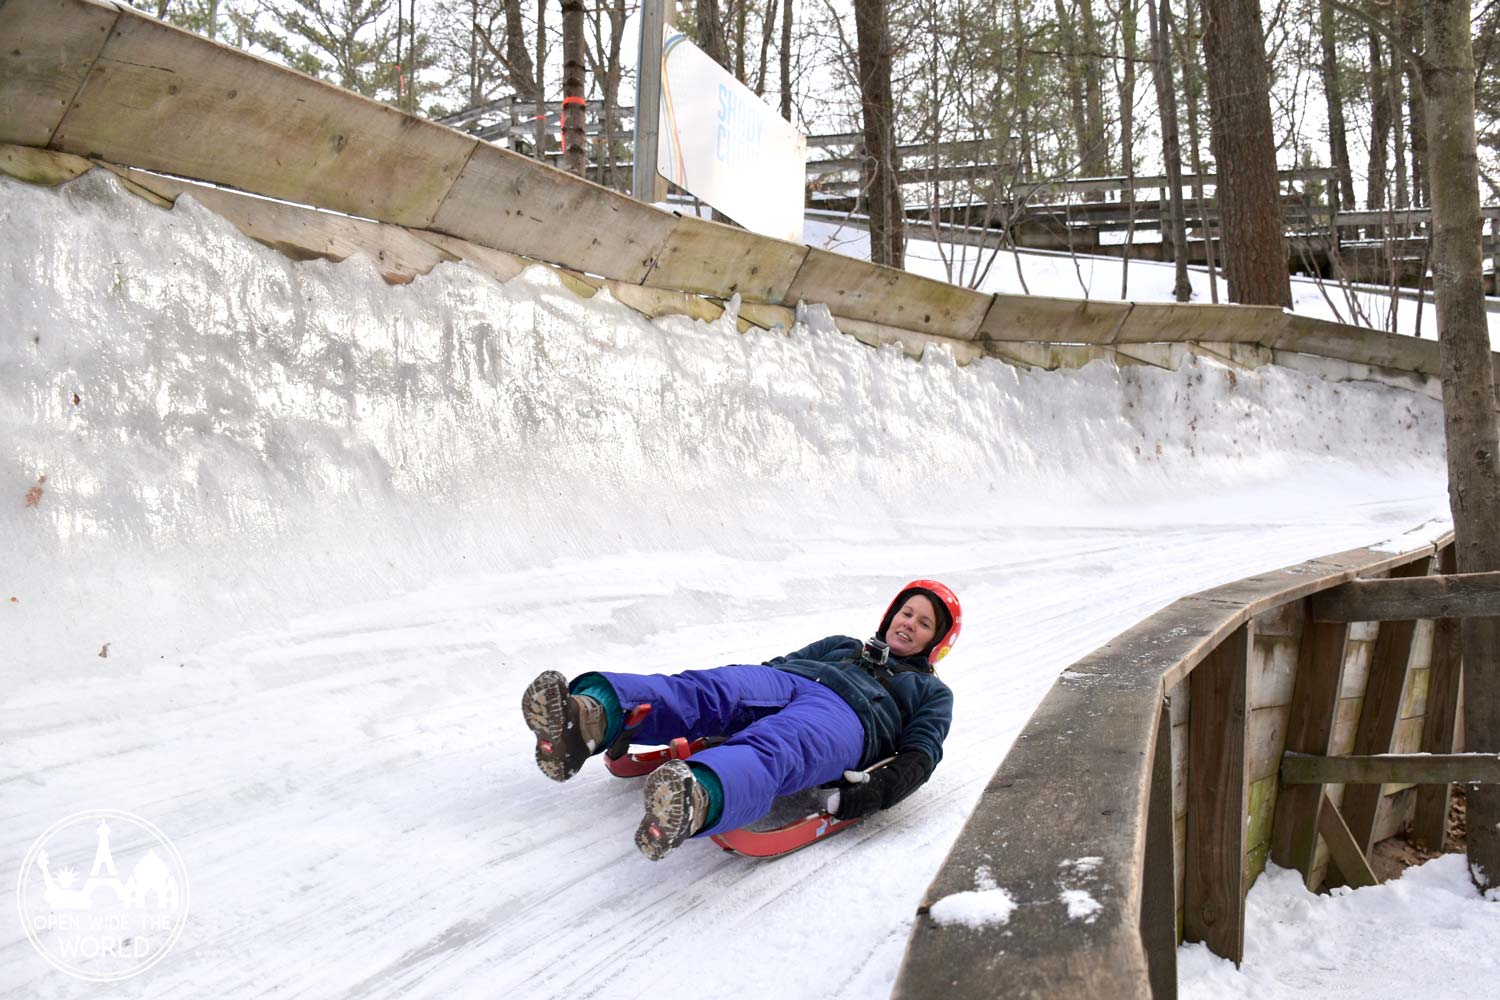 Luge run at Muskegon Winter Sports Complex, Michigan. #luge #openwidetheworld